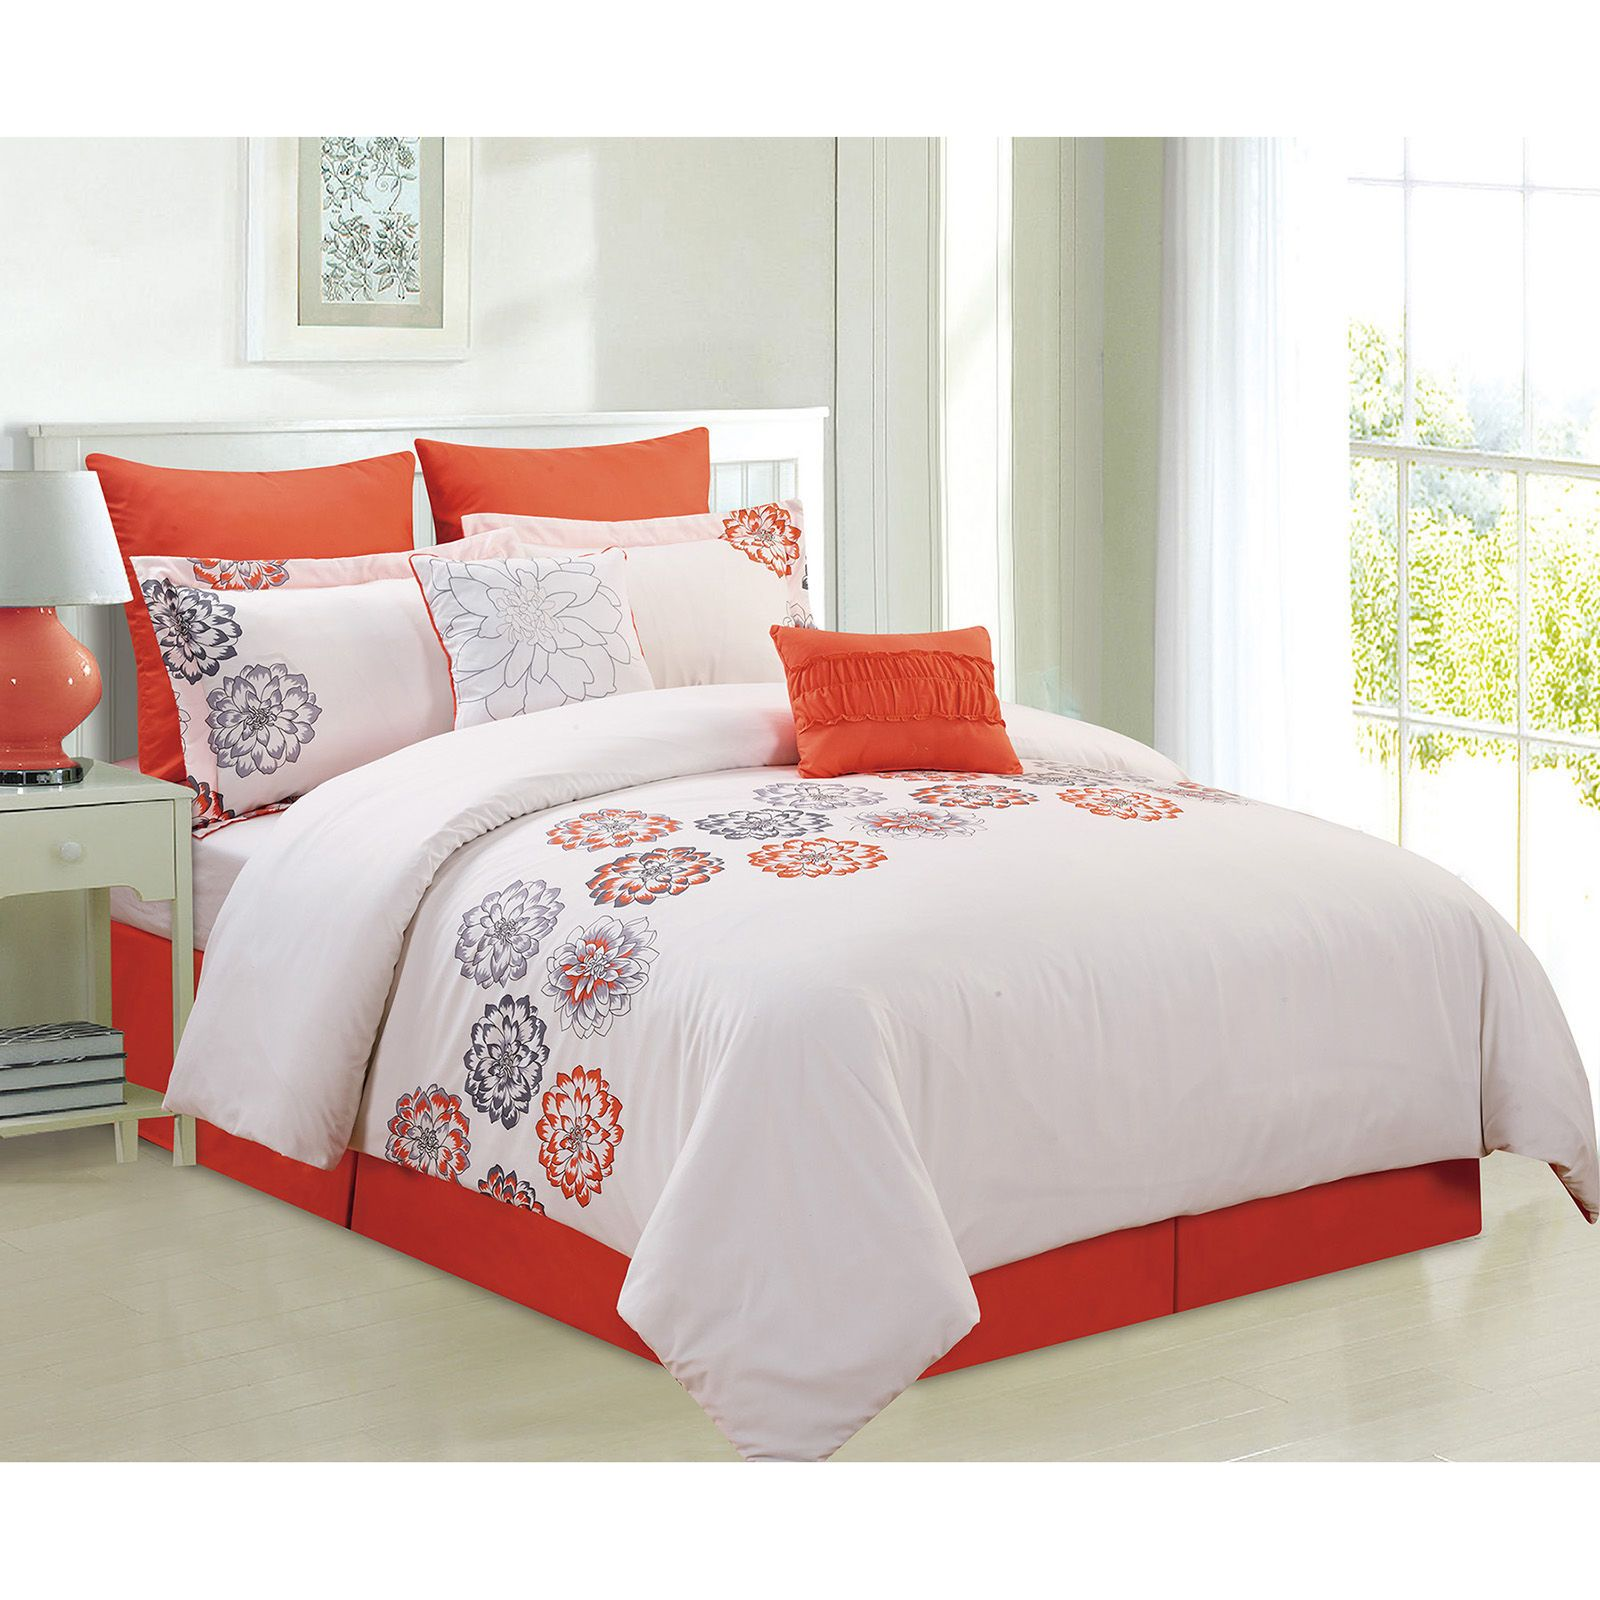 Orange and White Contemporary Floral Comforter Set Twin- 7 Piece